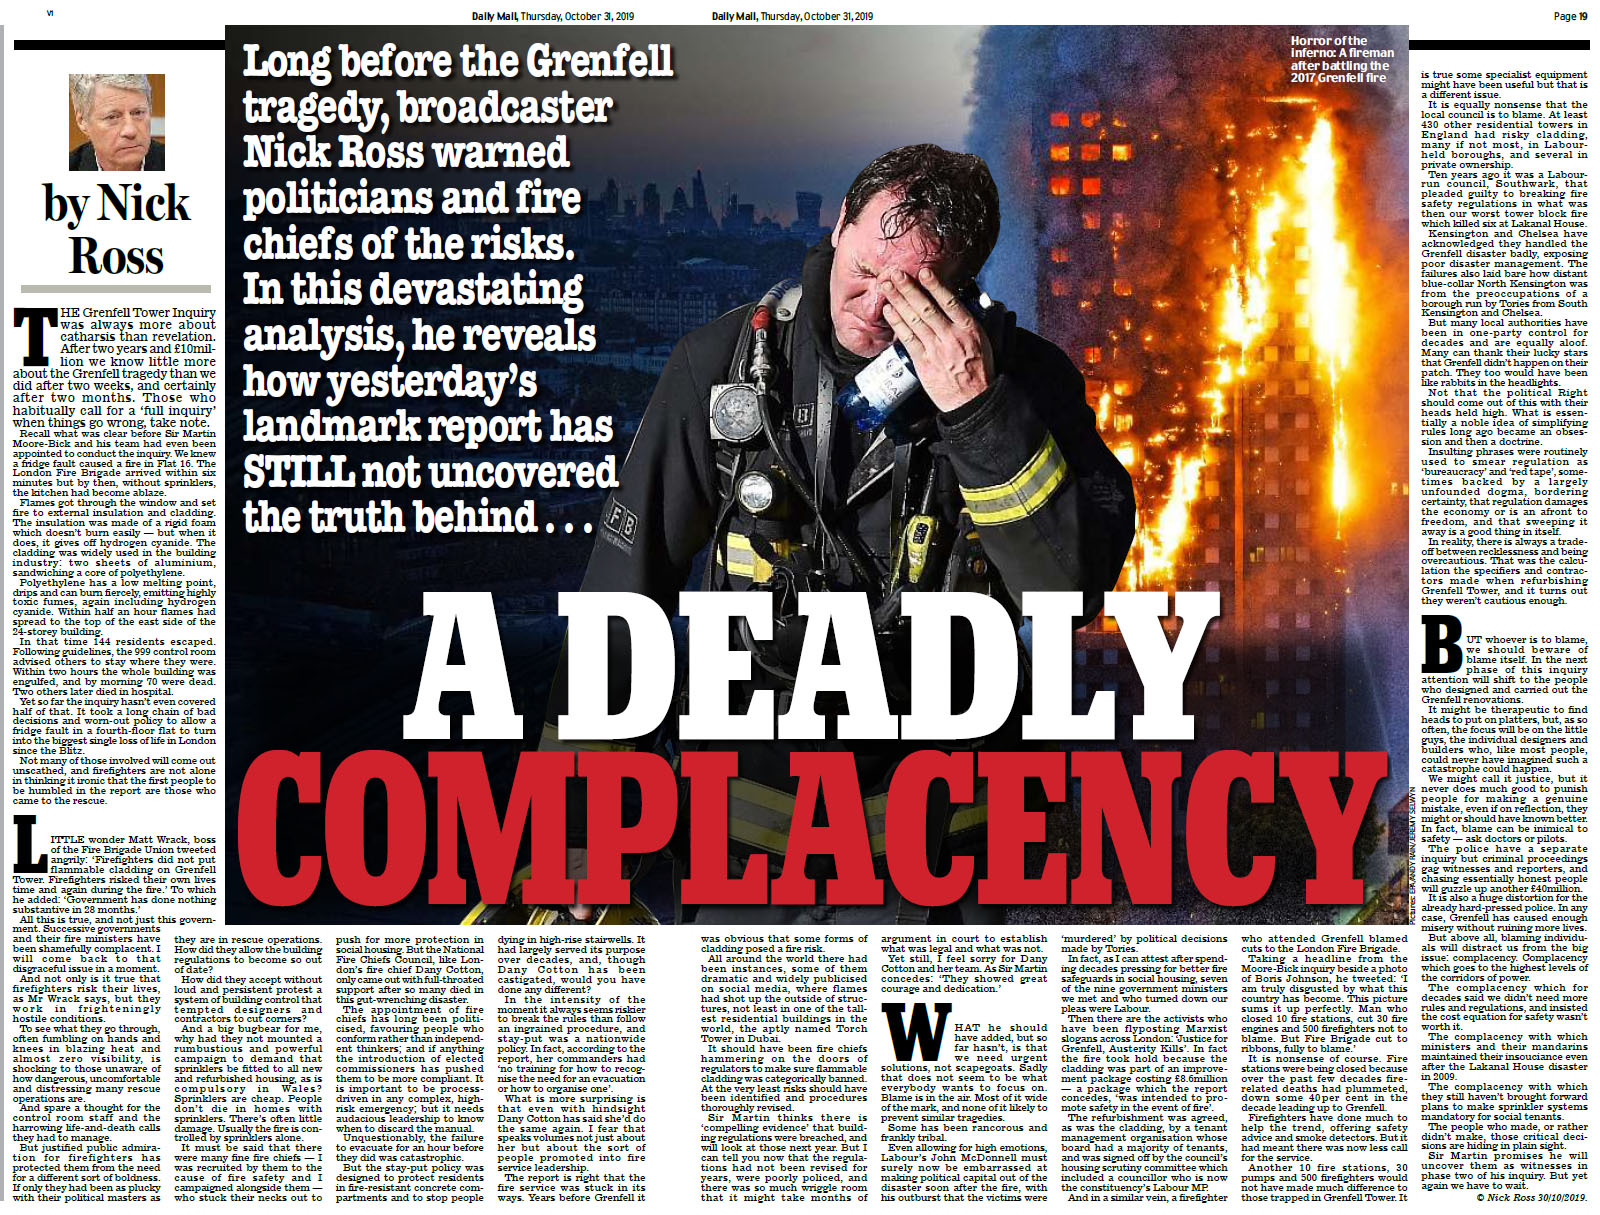 Daily Mail - A Deadly Complacency